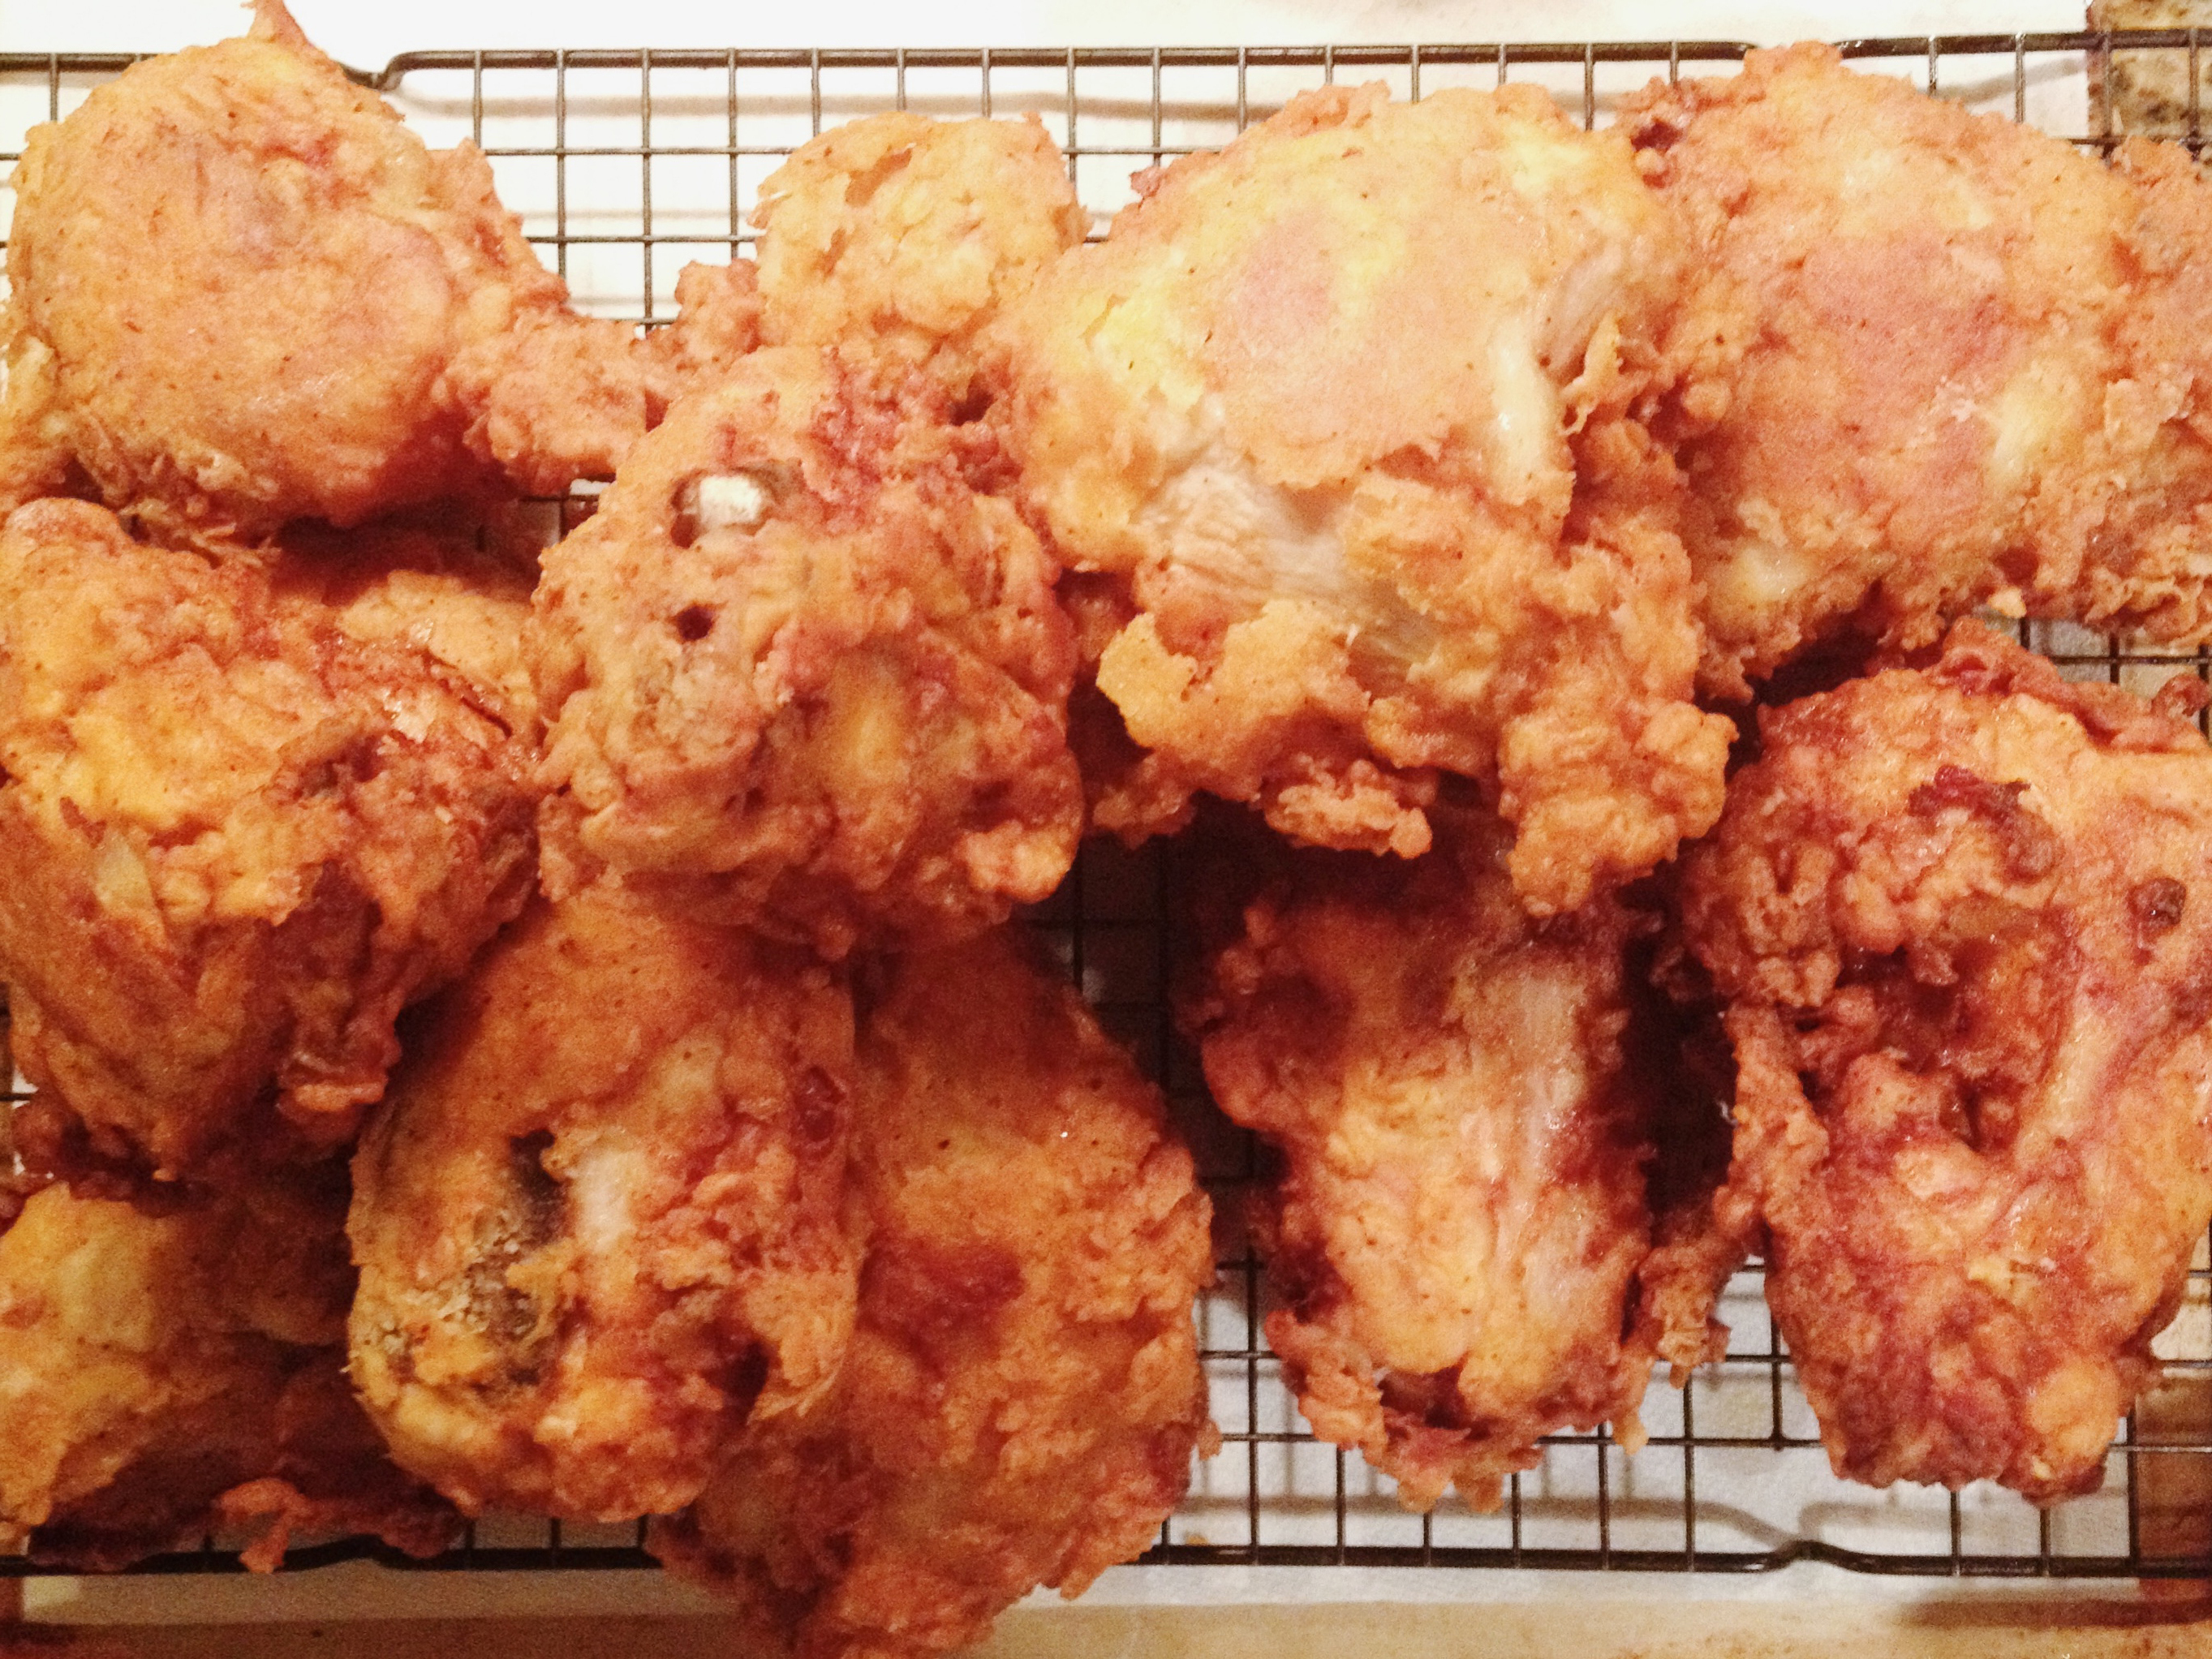 Fried Chicken, Ya'll